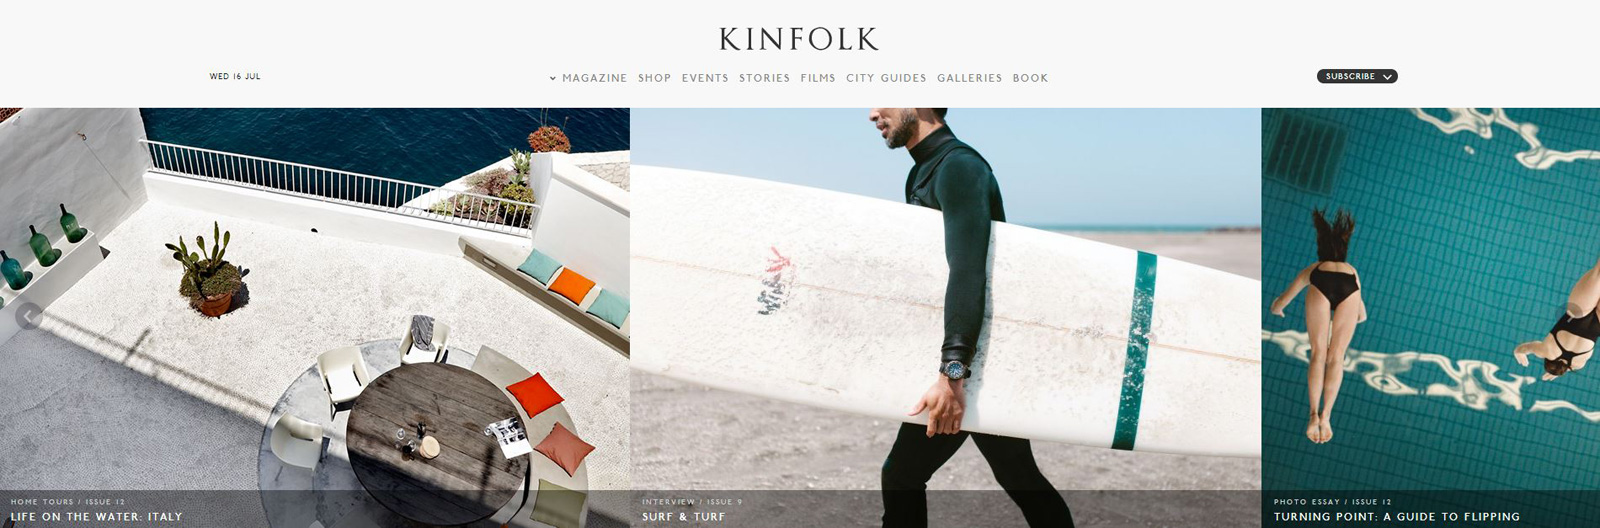 publish_kinfolk